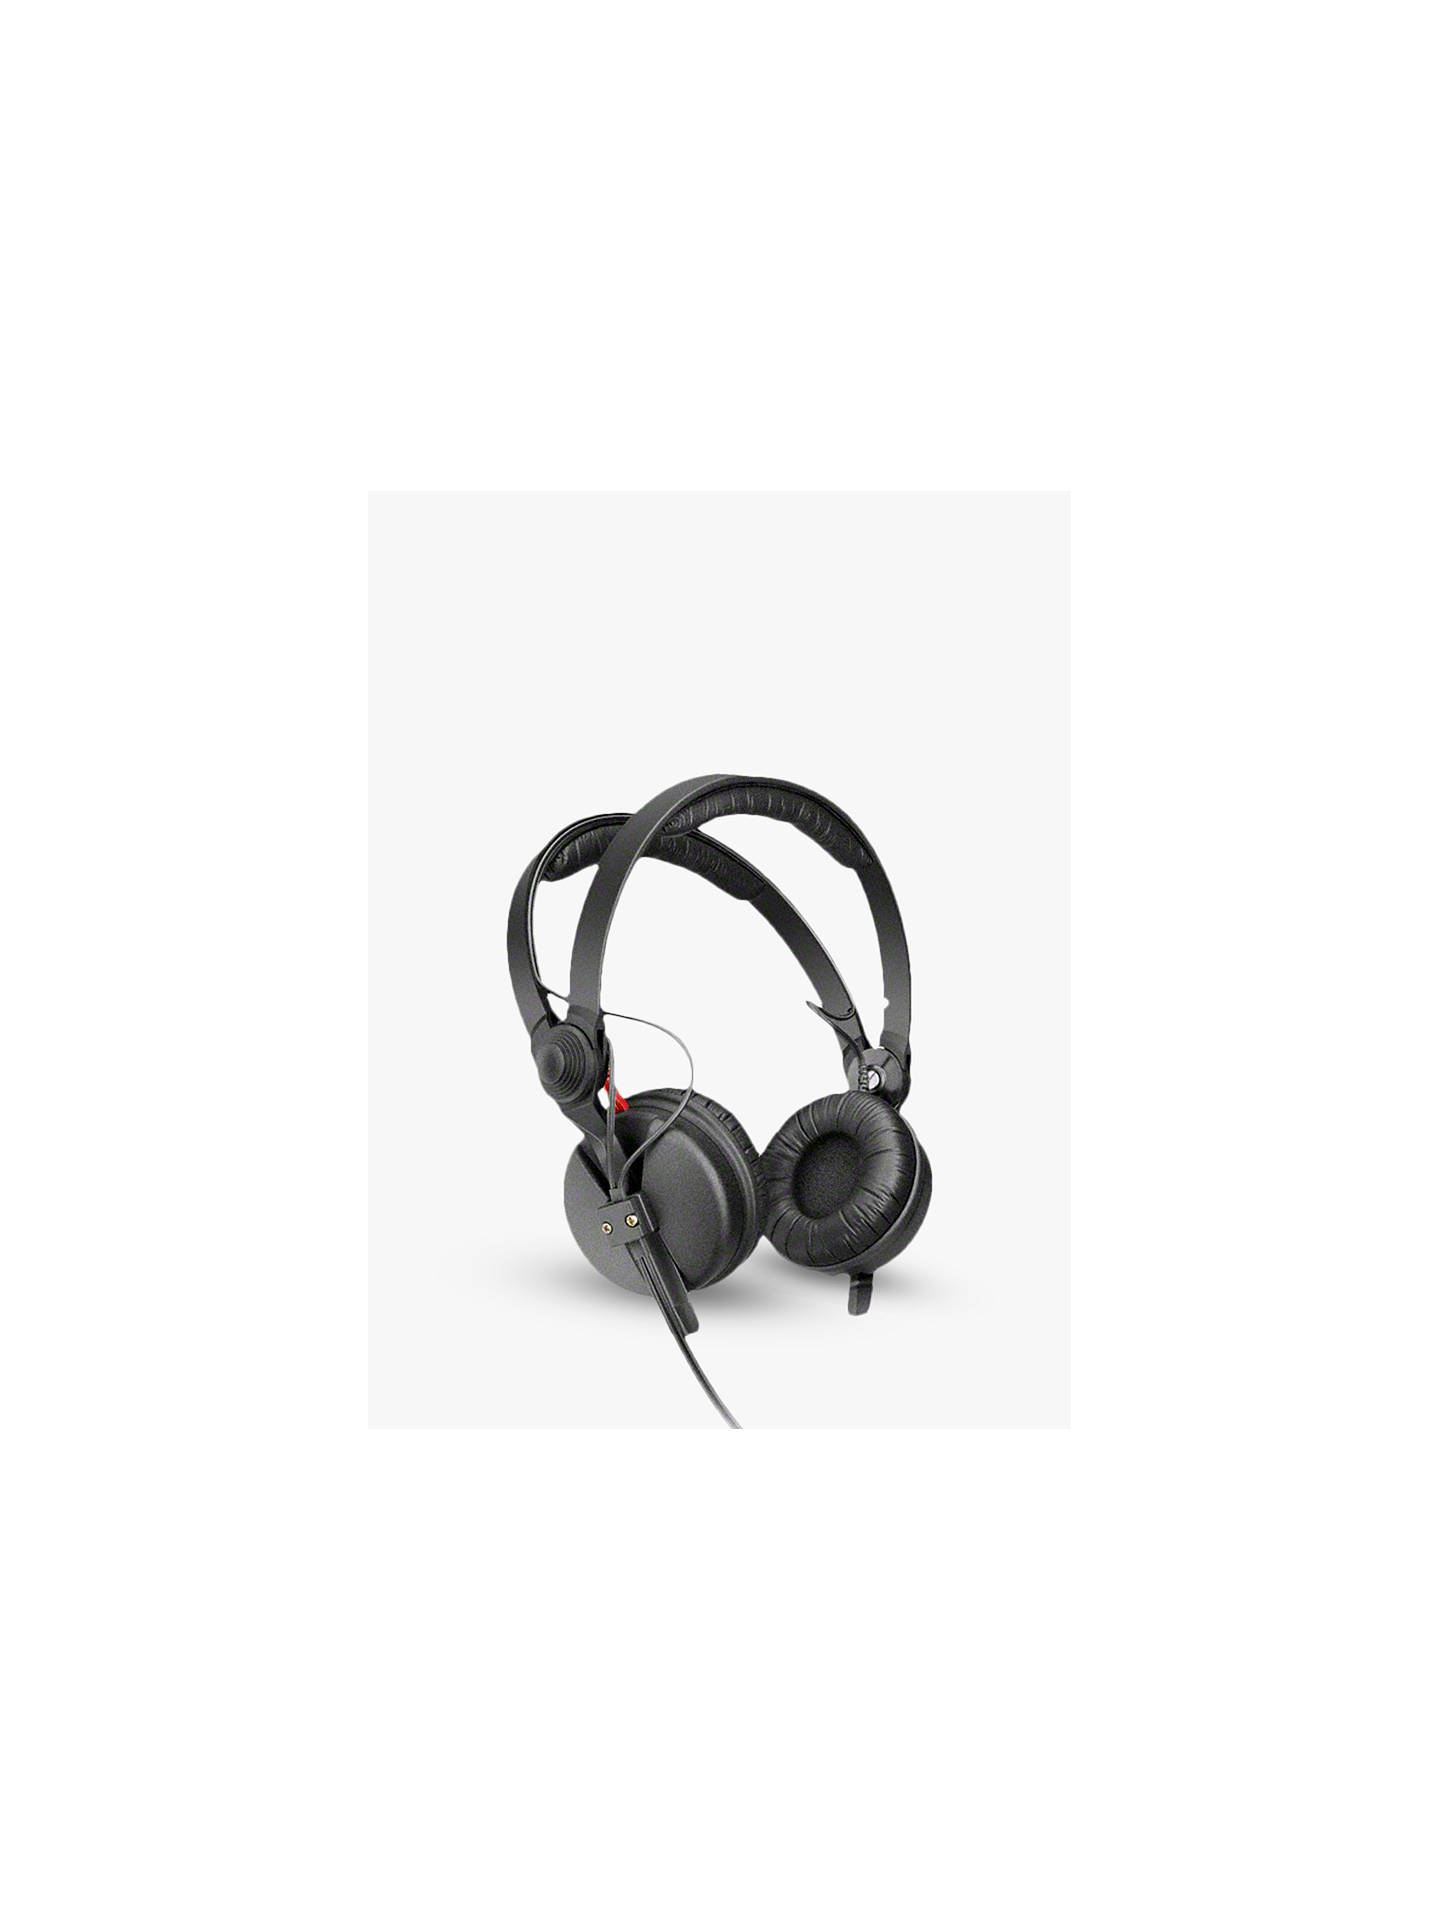 BuySennheiser HD 25-1 II On-Ear Monitoring Headphones, Black Online at johnlewis.com